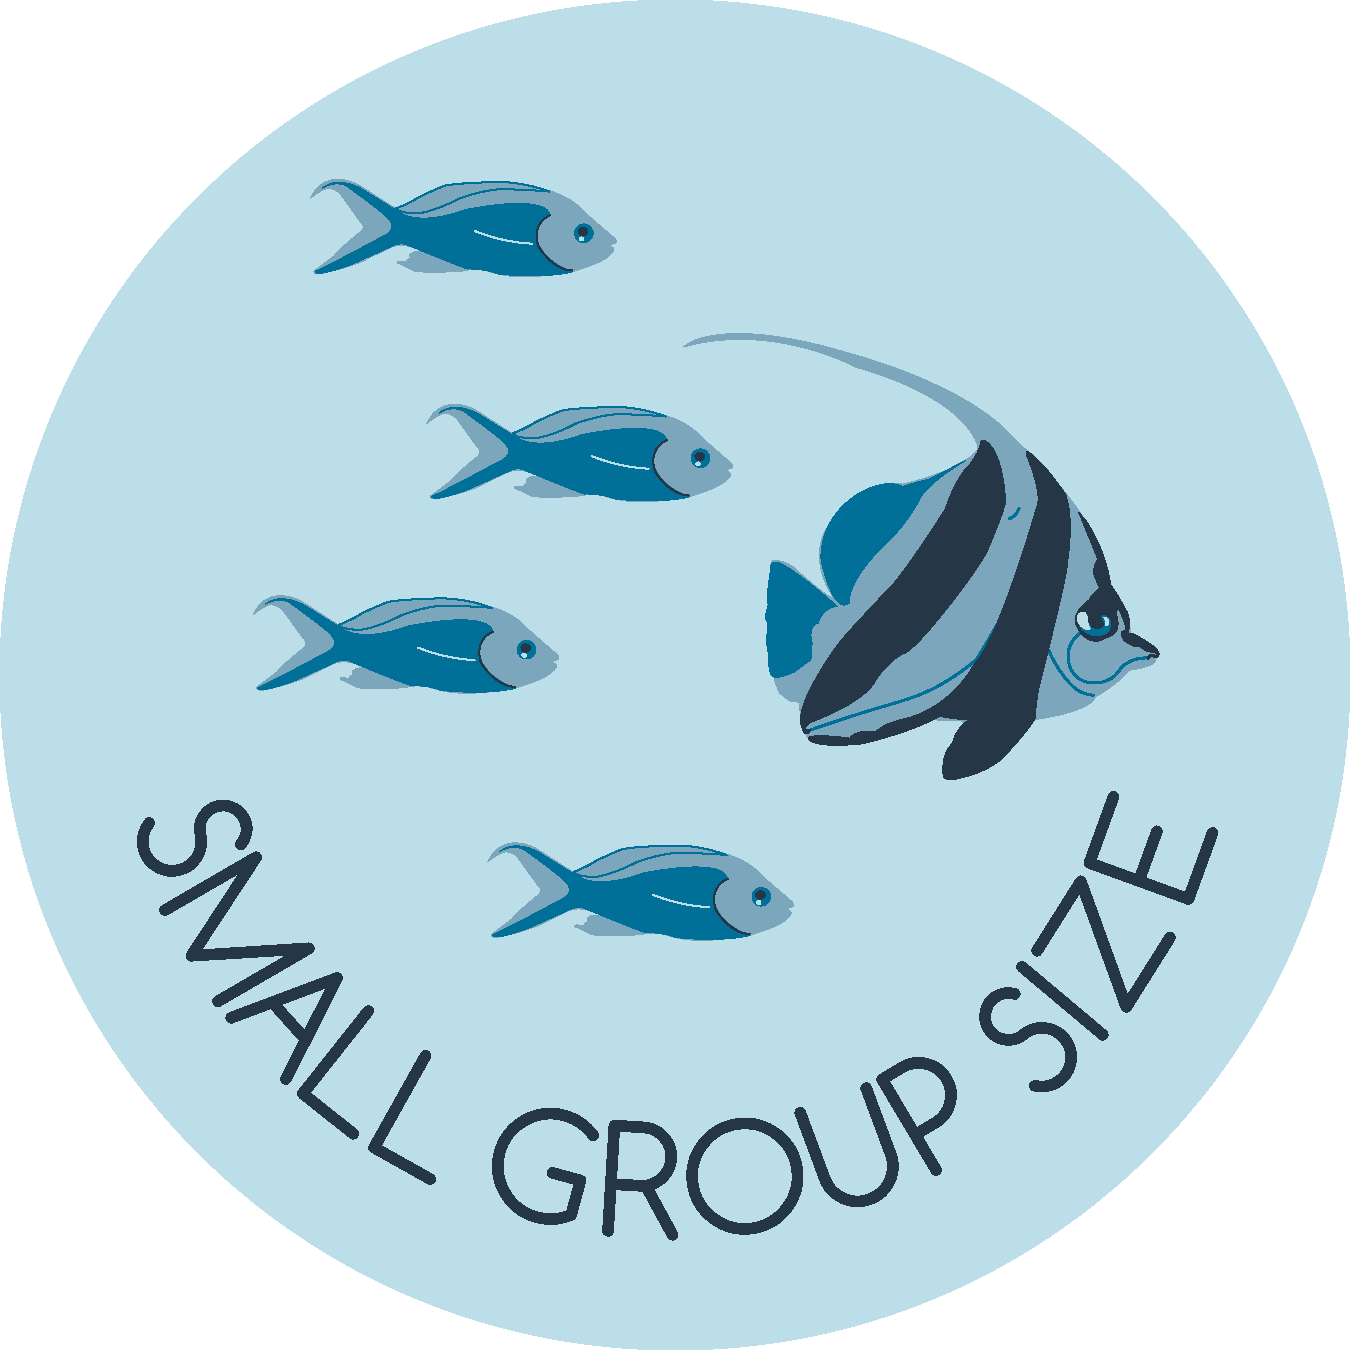 National Park Small Group Size